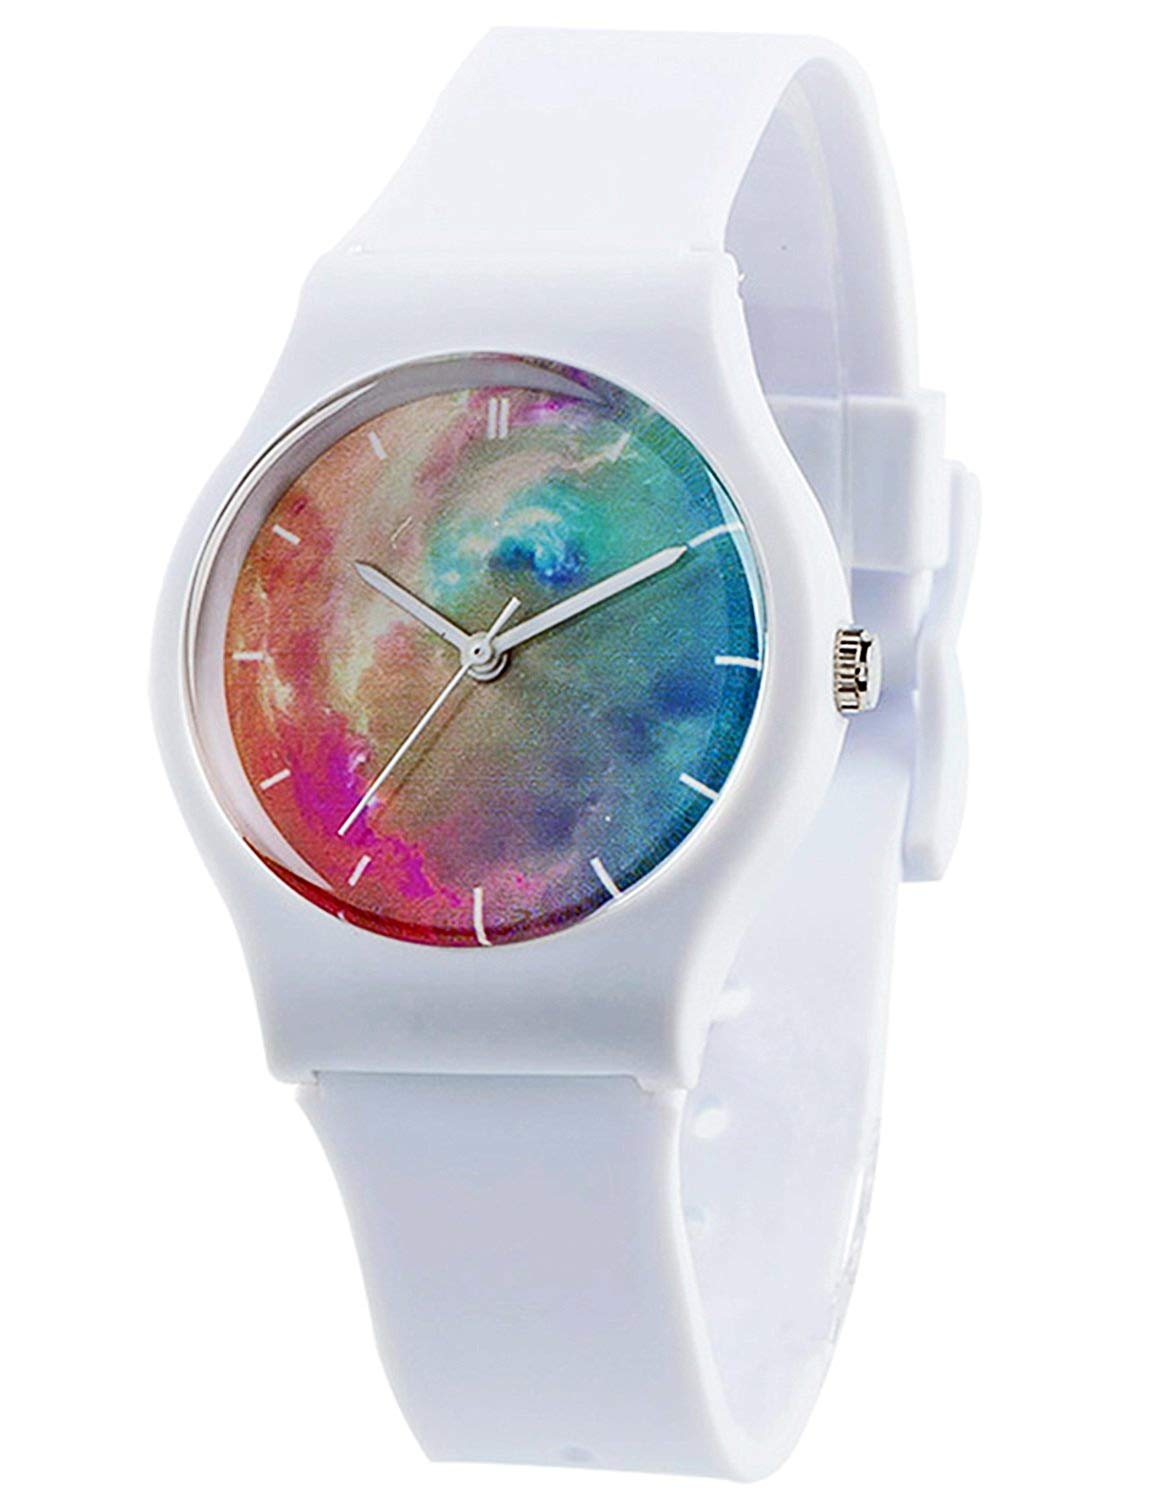 Super Soft Band Student Watches - golden birthday gift ideas for her